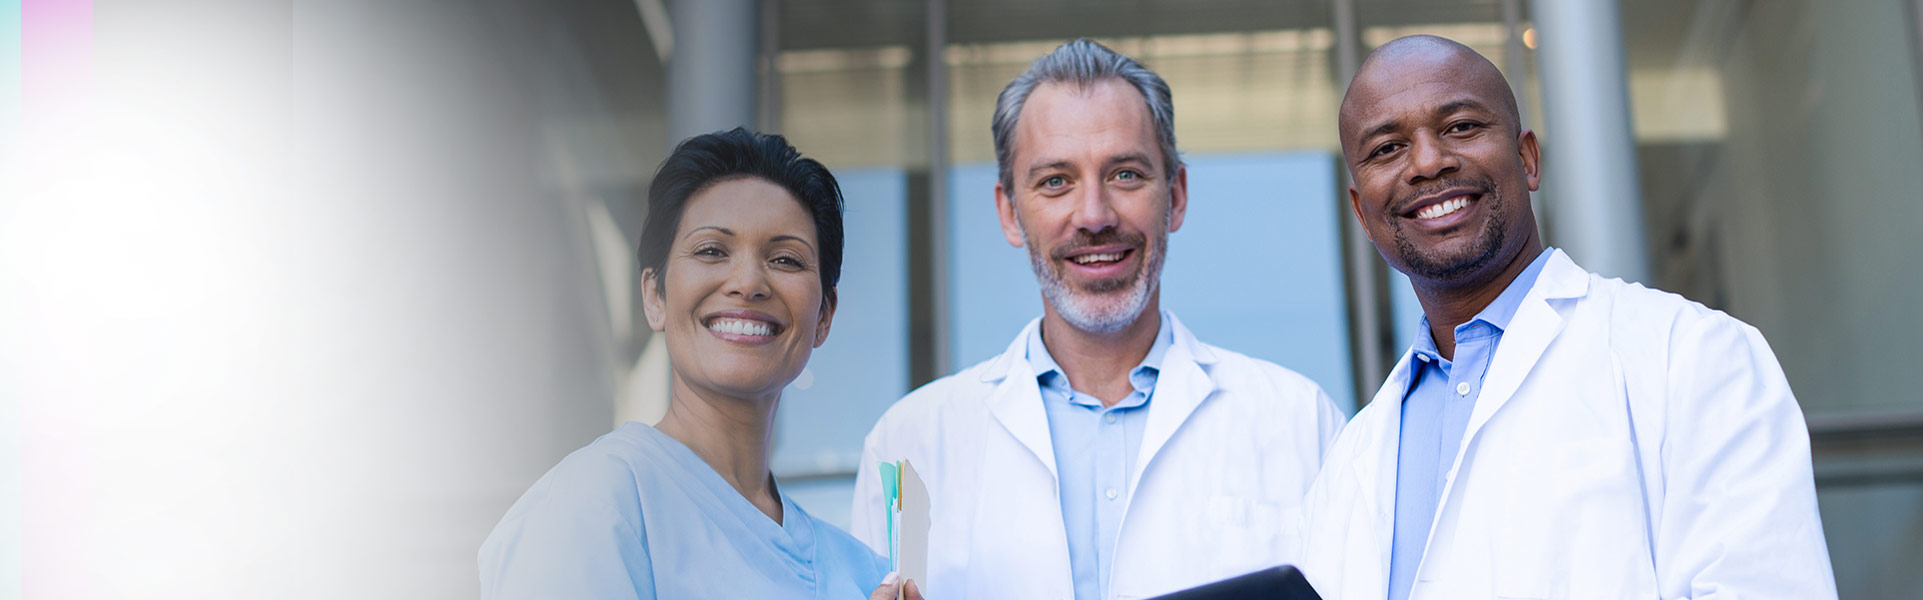 photo of a female doctor and two male doctors smiling outside a medical building